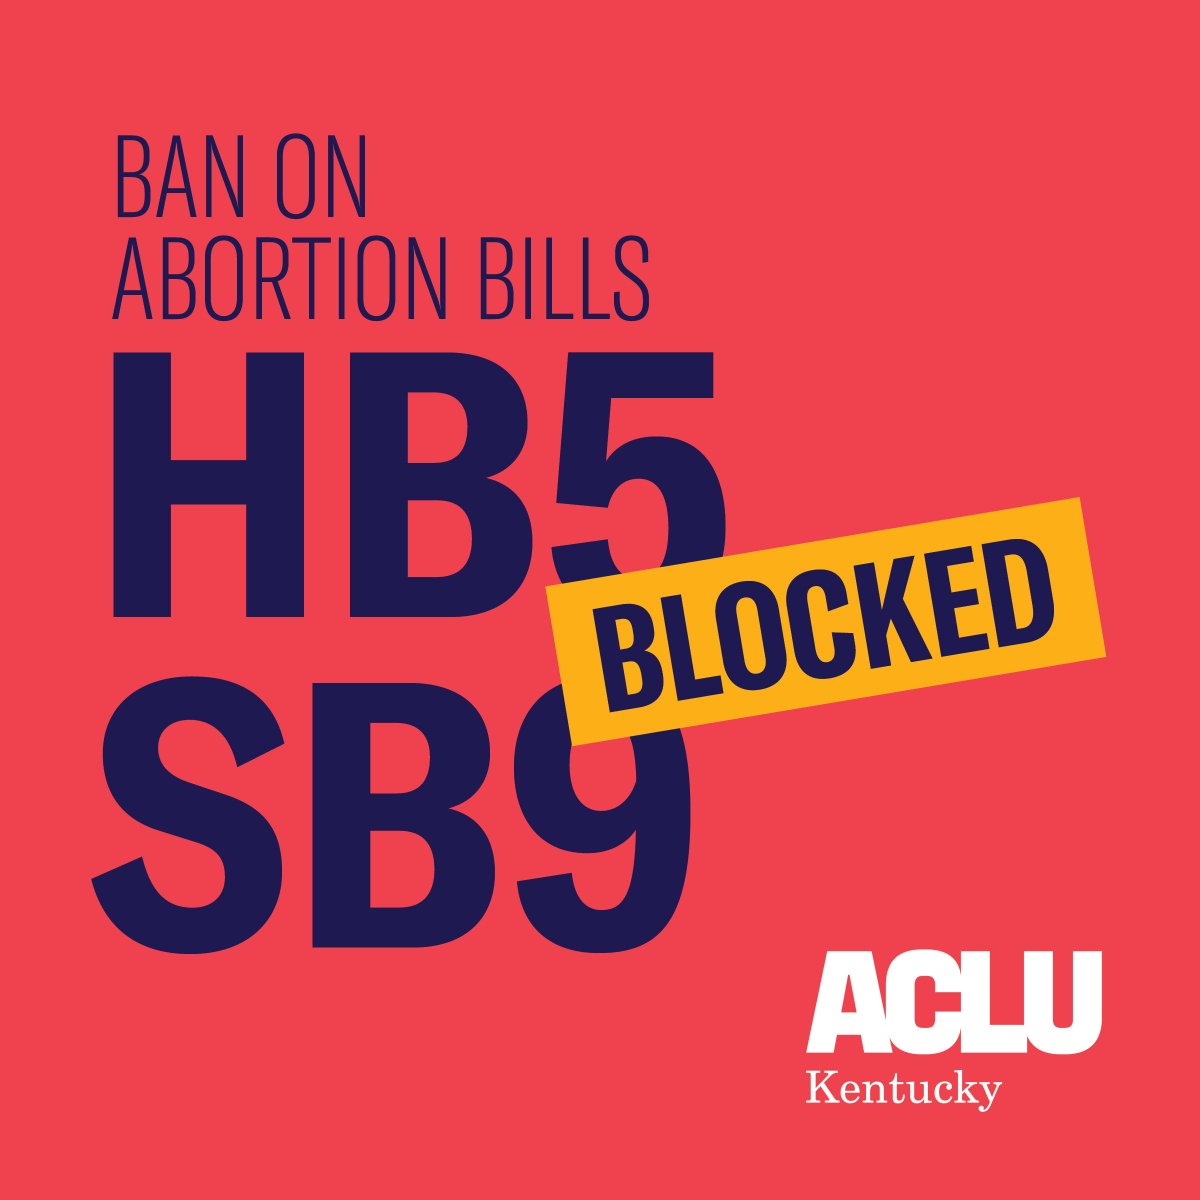 Update & VICTORY: The Temporary Restraining Order blocking enforcement of Reason Abortion Ban House Bill 5 and 6-week Abortion Ban Senate Bill 9 has been extended until the final ruling in the district court. #HB5 #SB9 #kyga19 #stopthebans